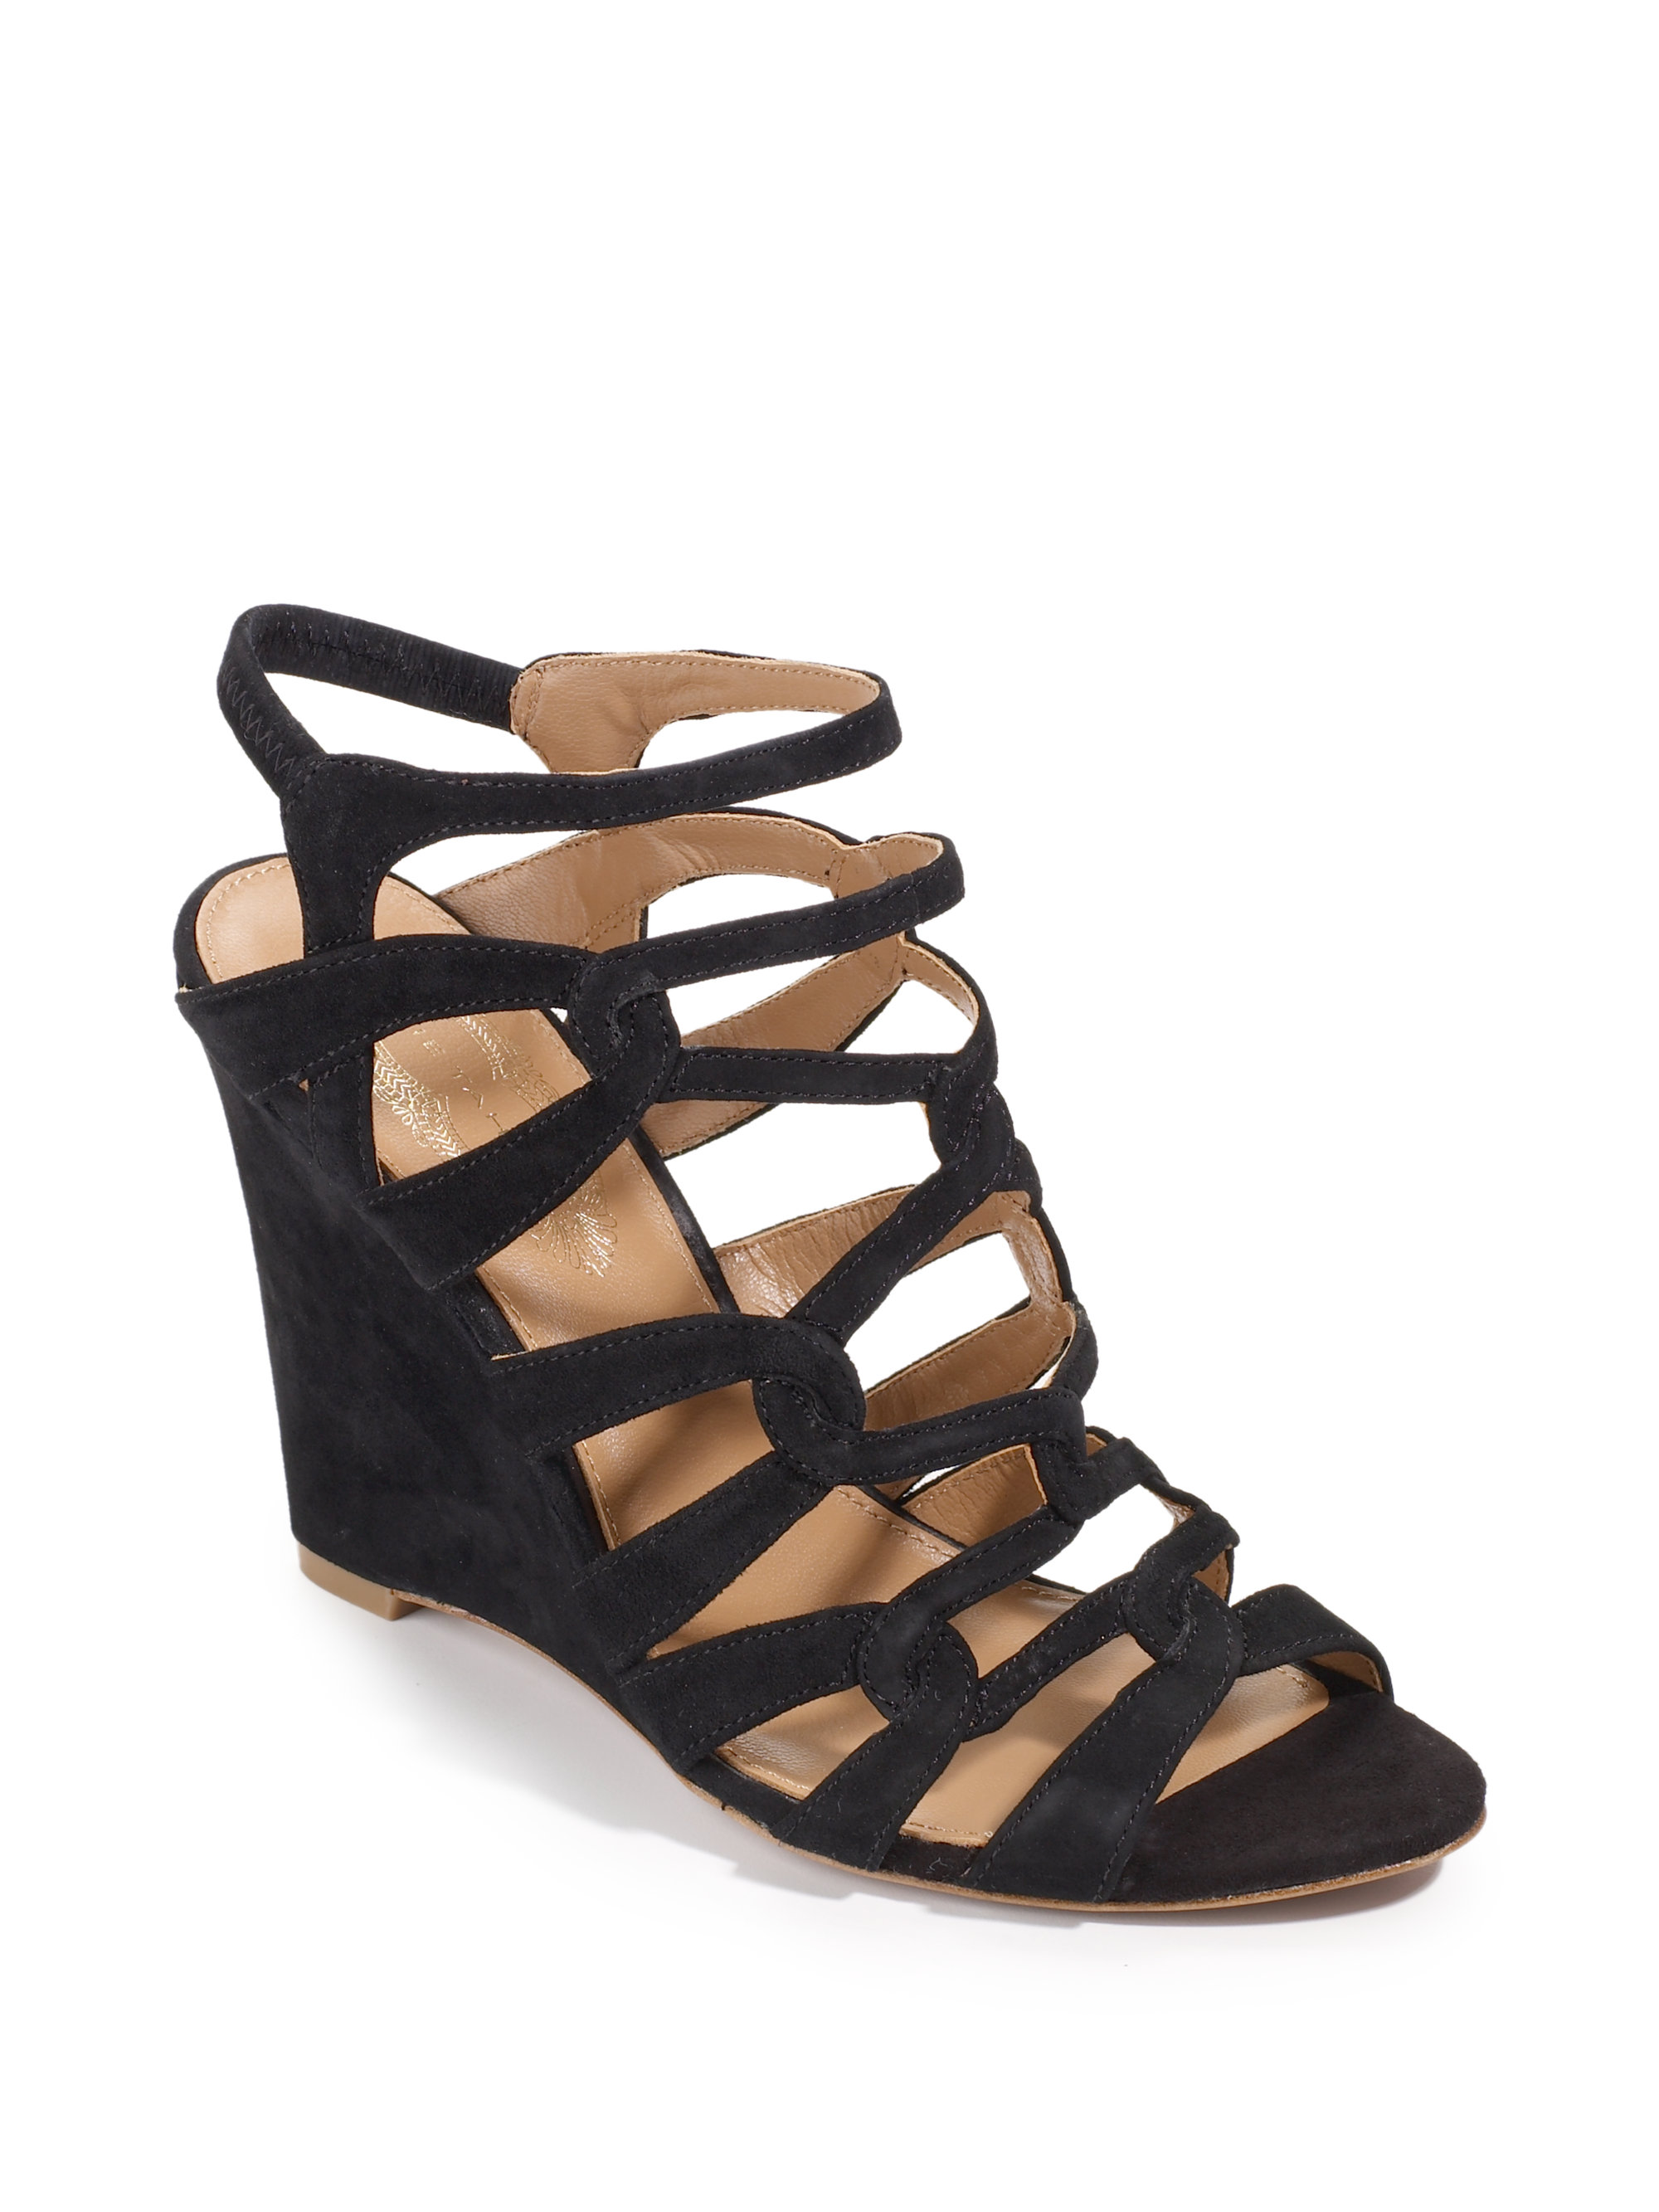 elie tahari meredith suede wedge sandals in black lyst